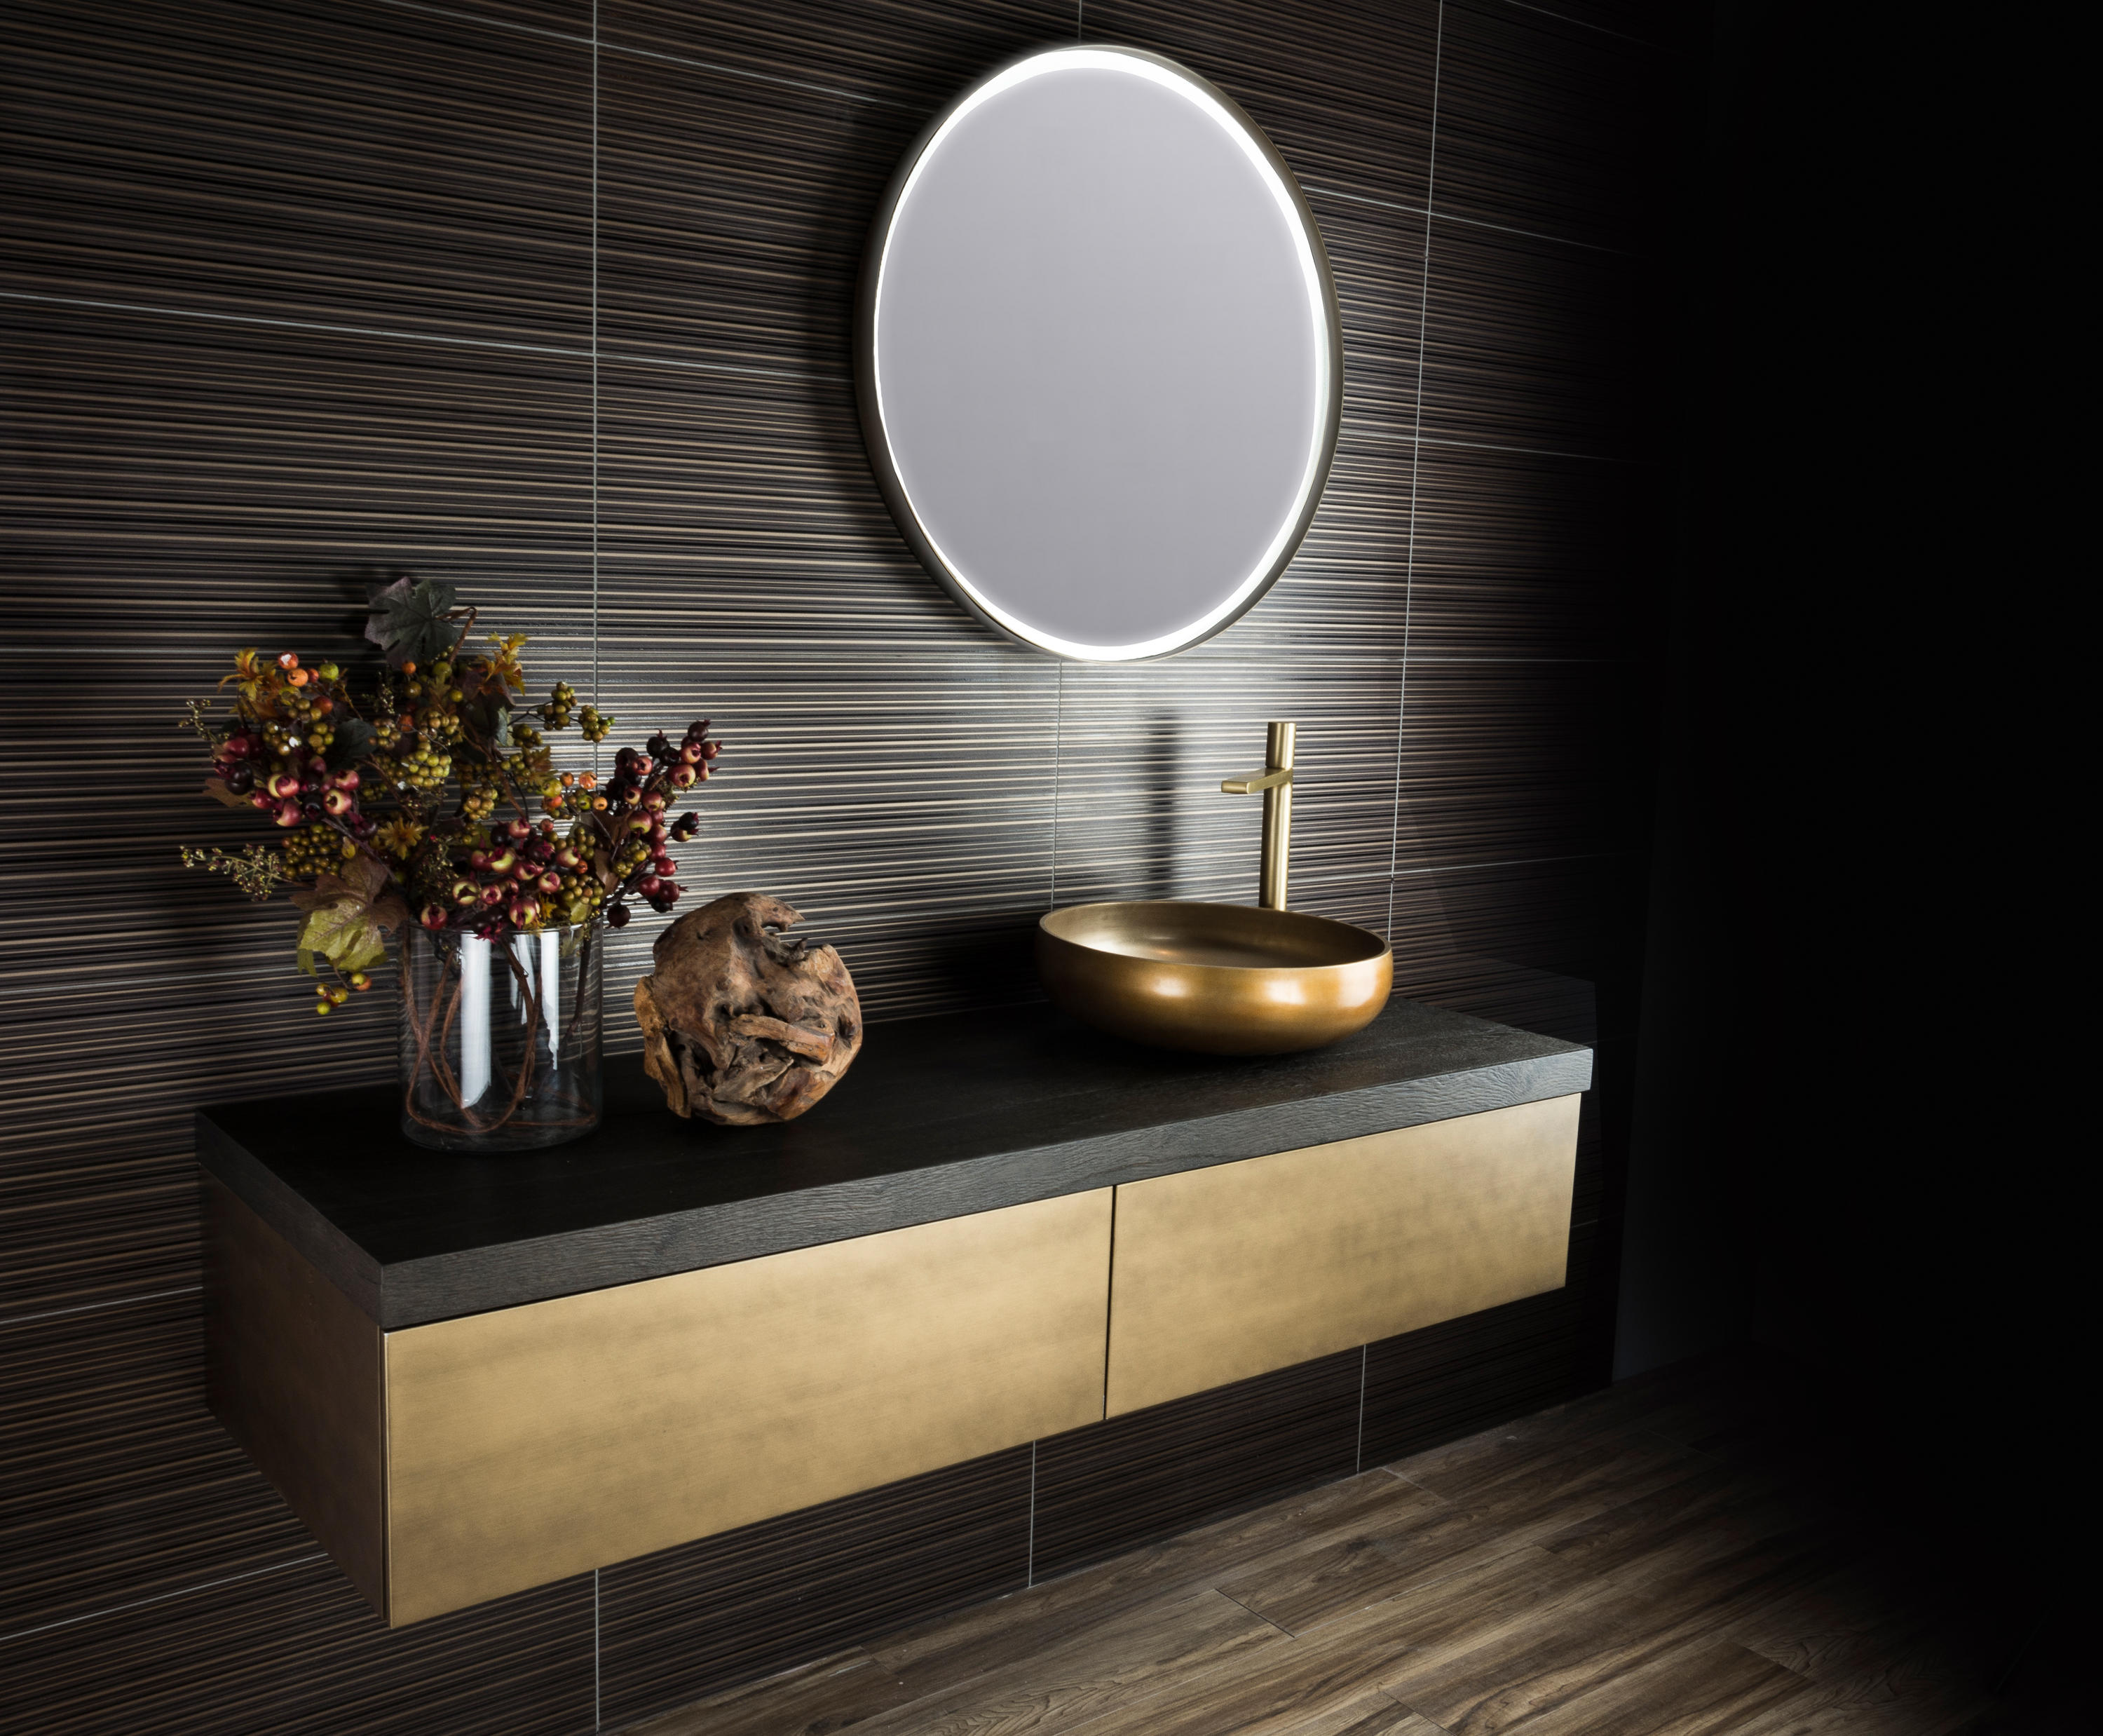 Bagno Design Bradford Monroe Countertop 710mm Wood Panels From Bagnodesign Architonic